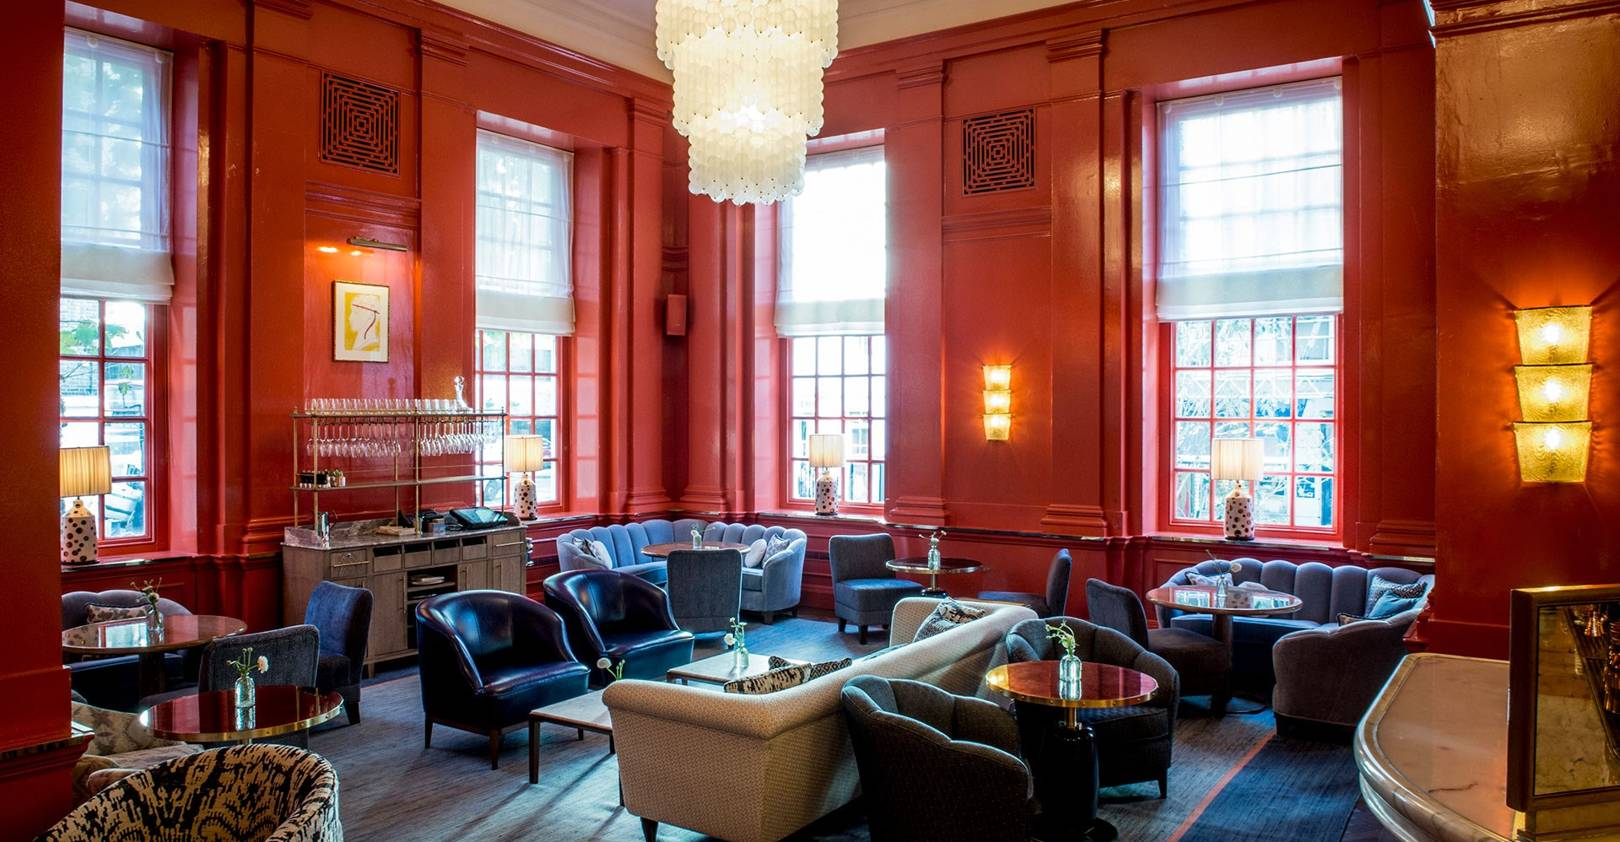 The Bloomsbury Hotel, London review